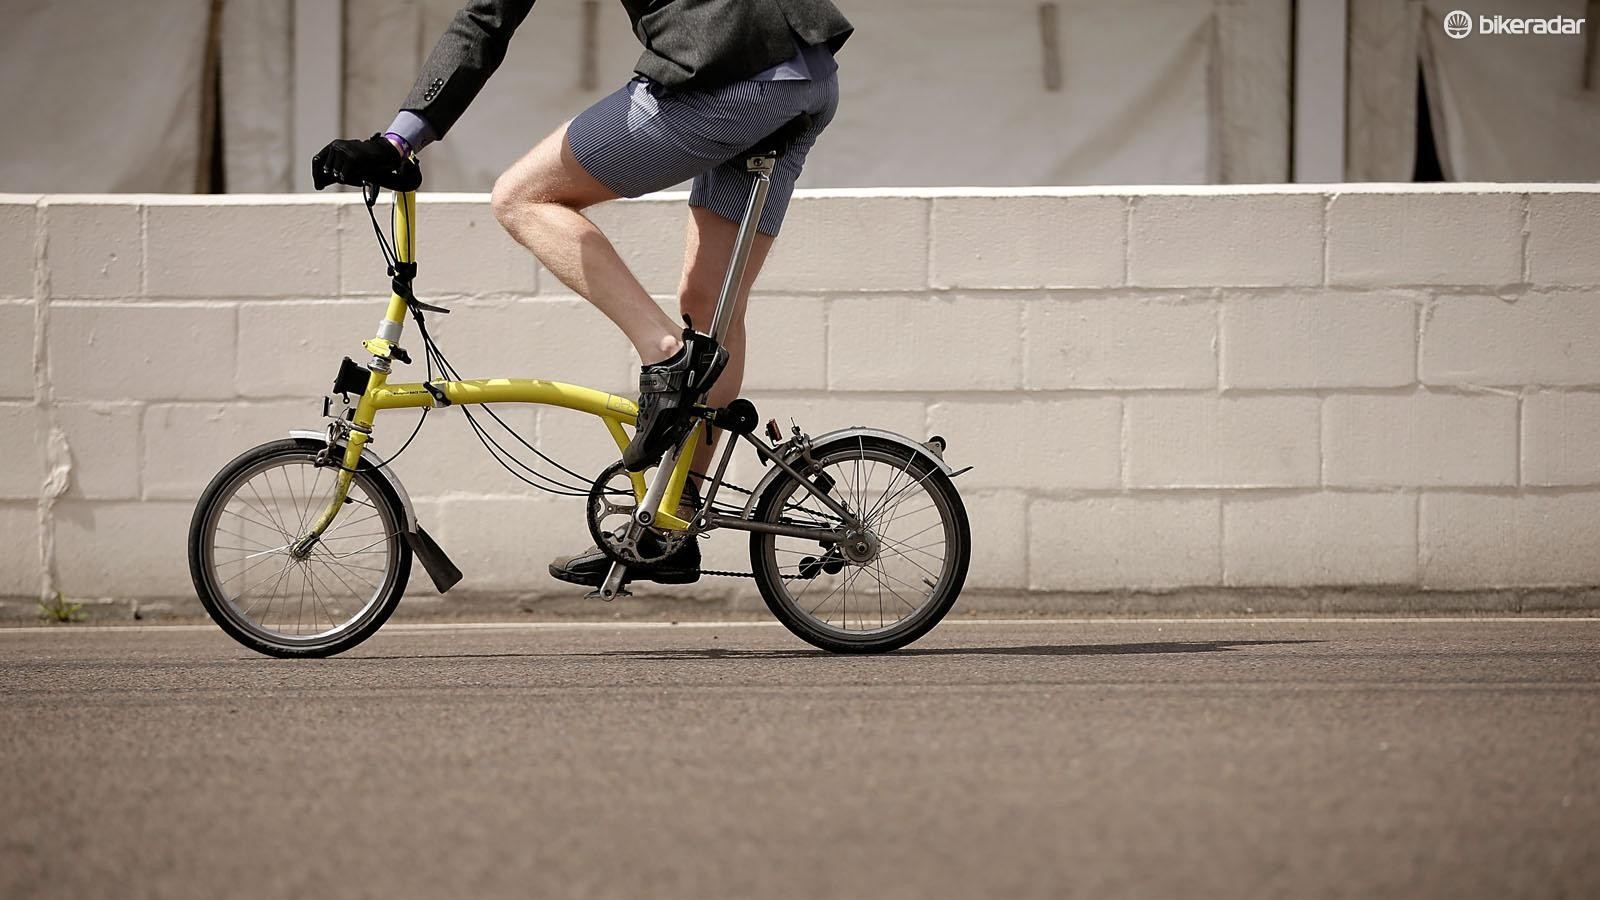 Folding bikes are a strong choice for those short on space, at home or work